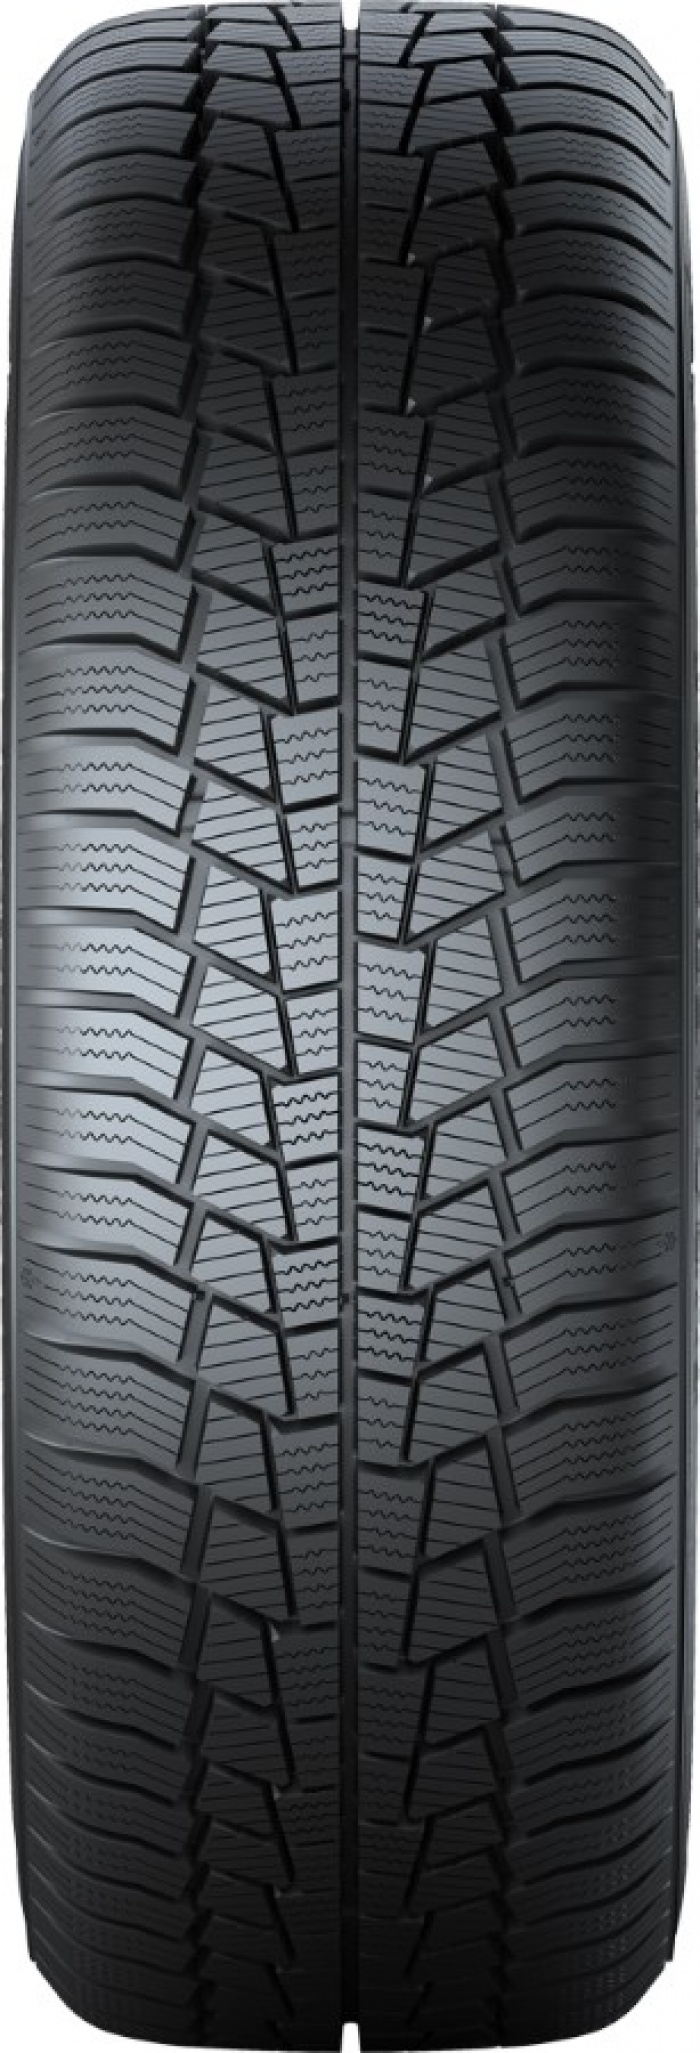 Gislaved Euro Frost 6 165/70 R14 81T  не шип